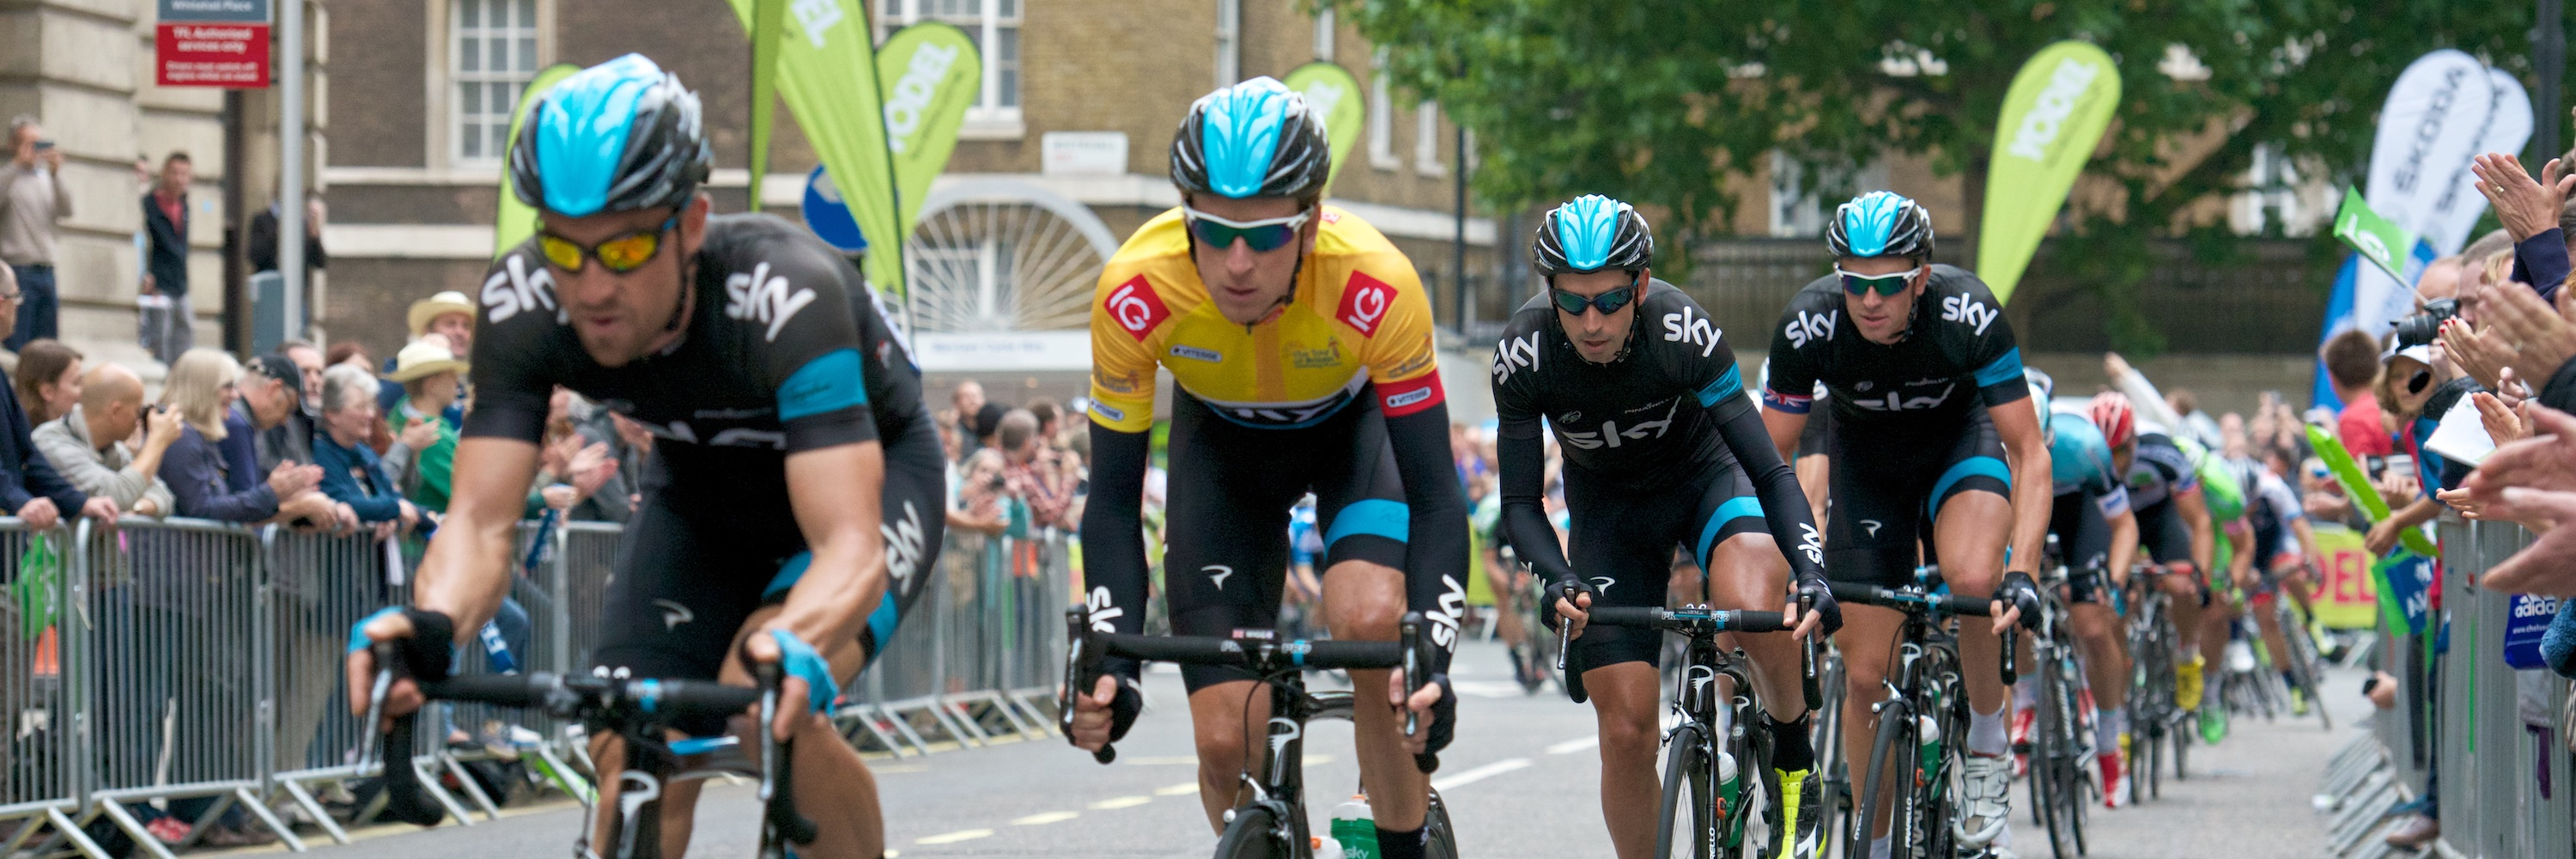 CJP - Tour of Britain 2013 - London